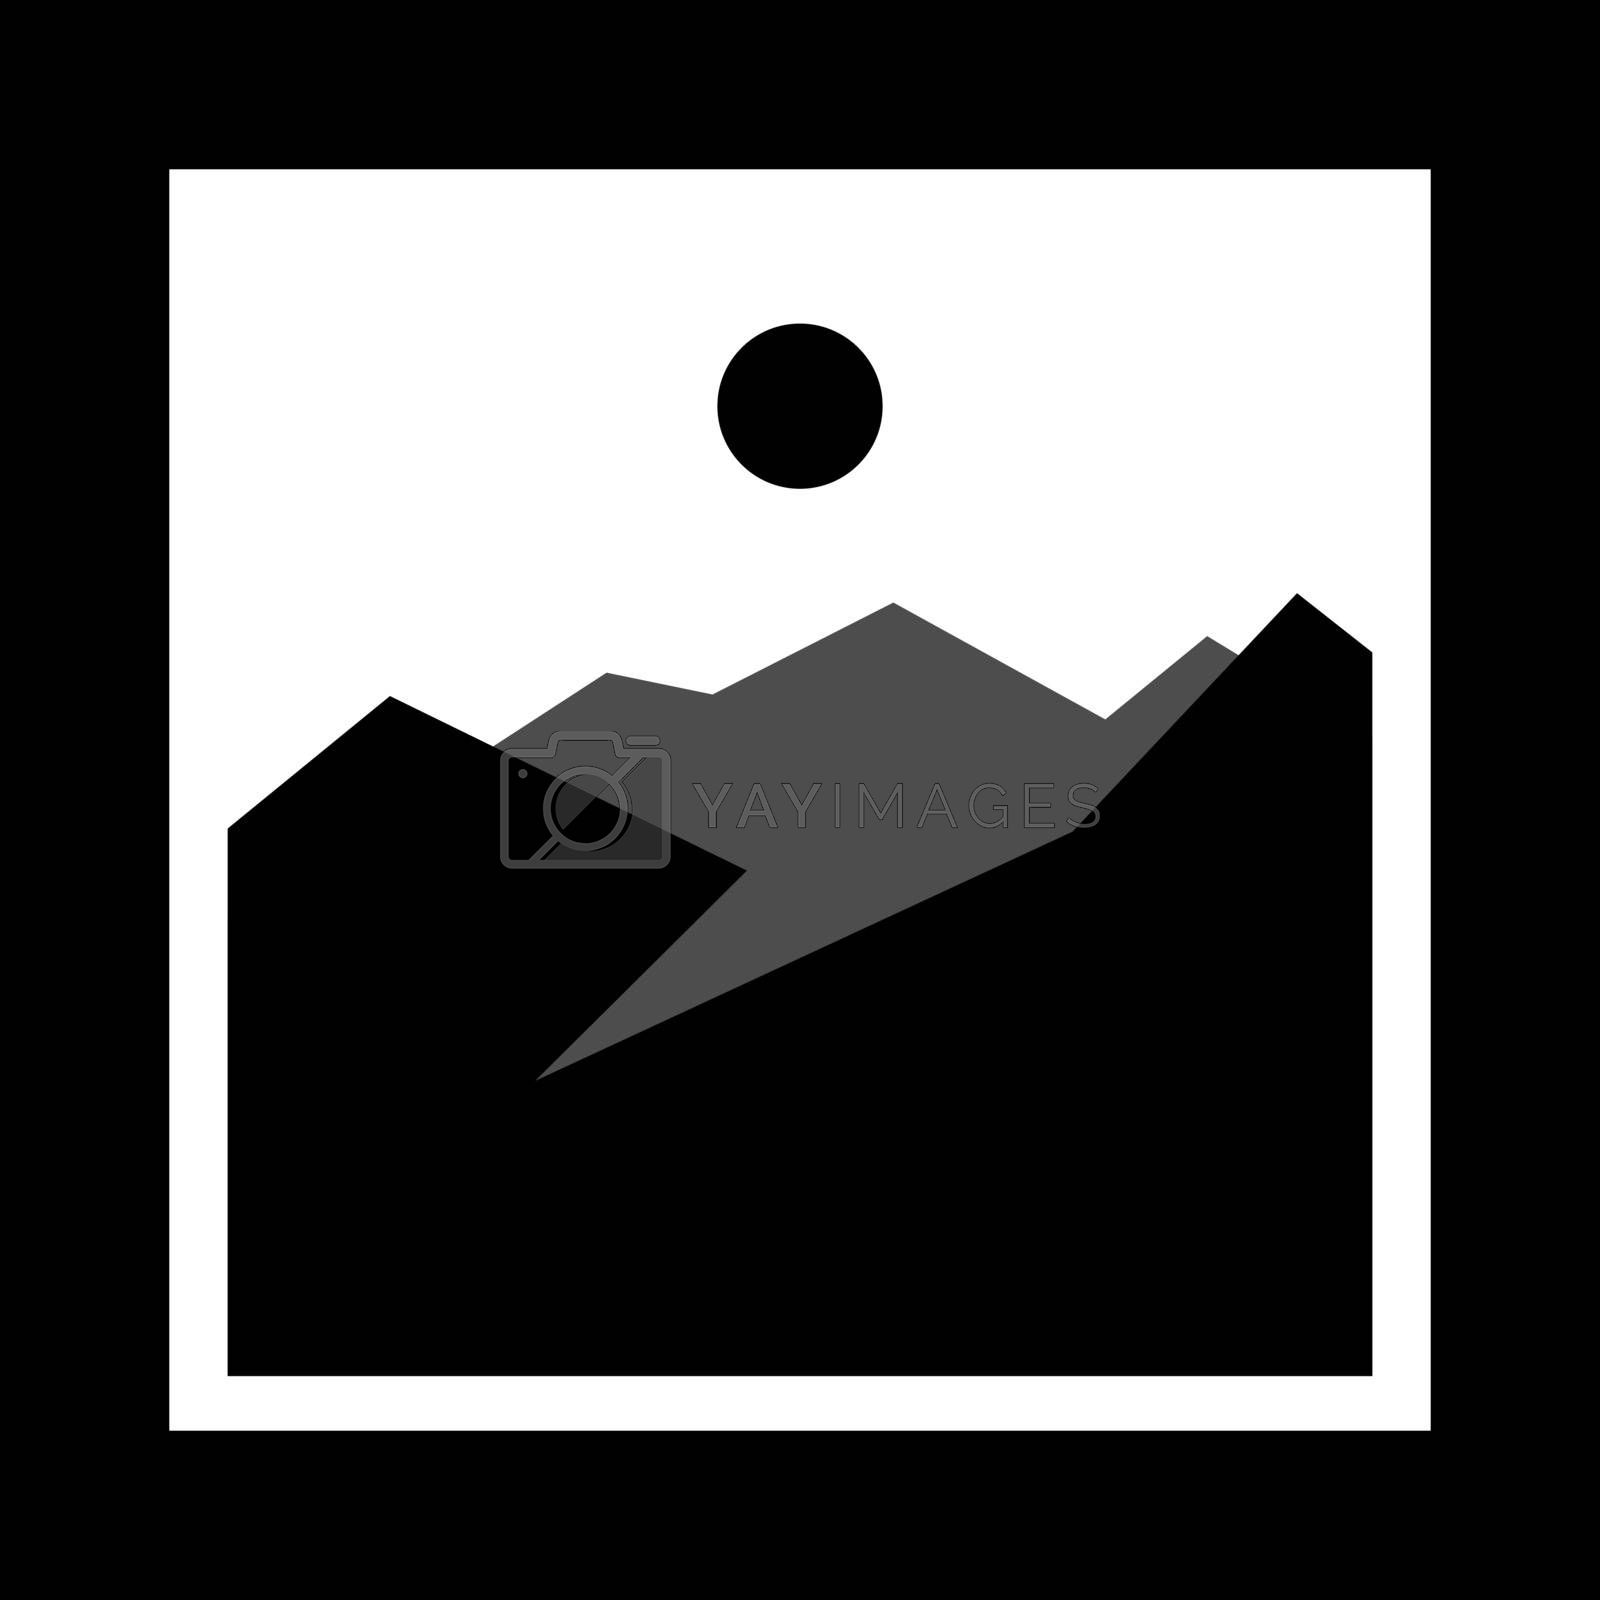 simple monochrome icon with mountains and sun